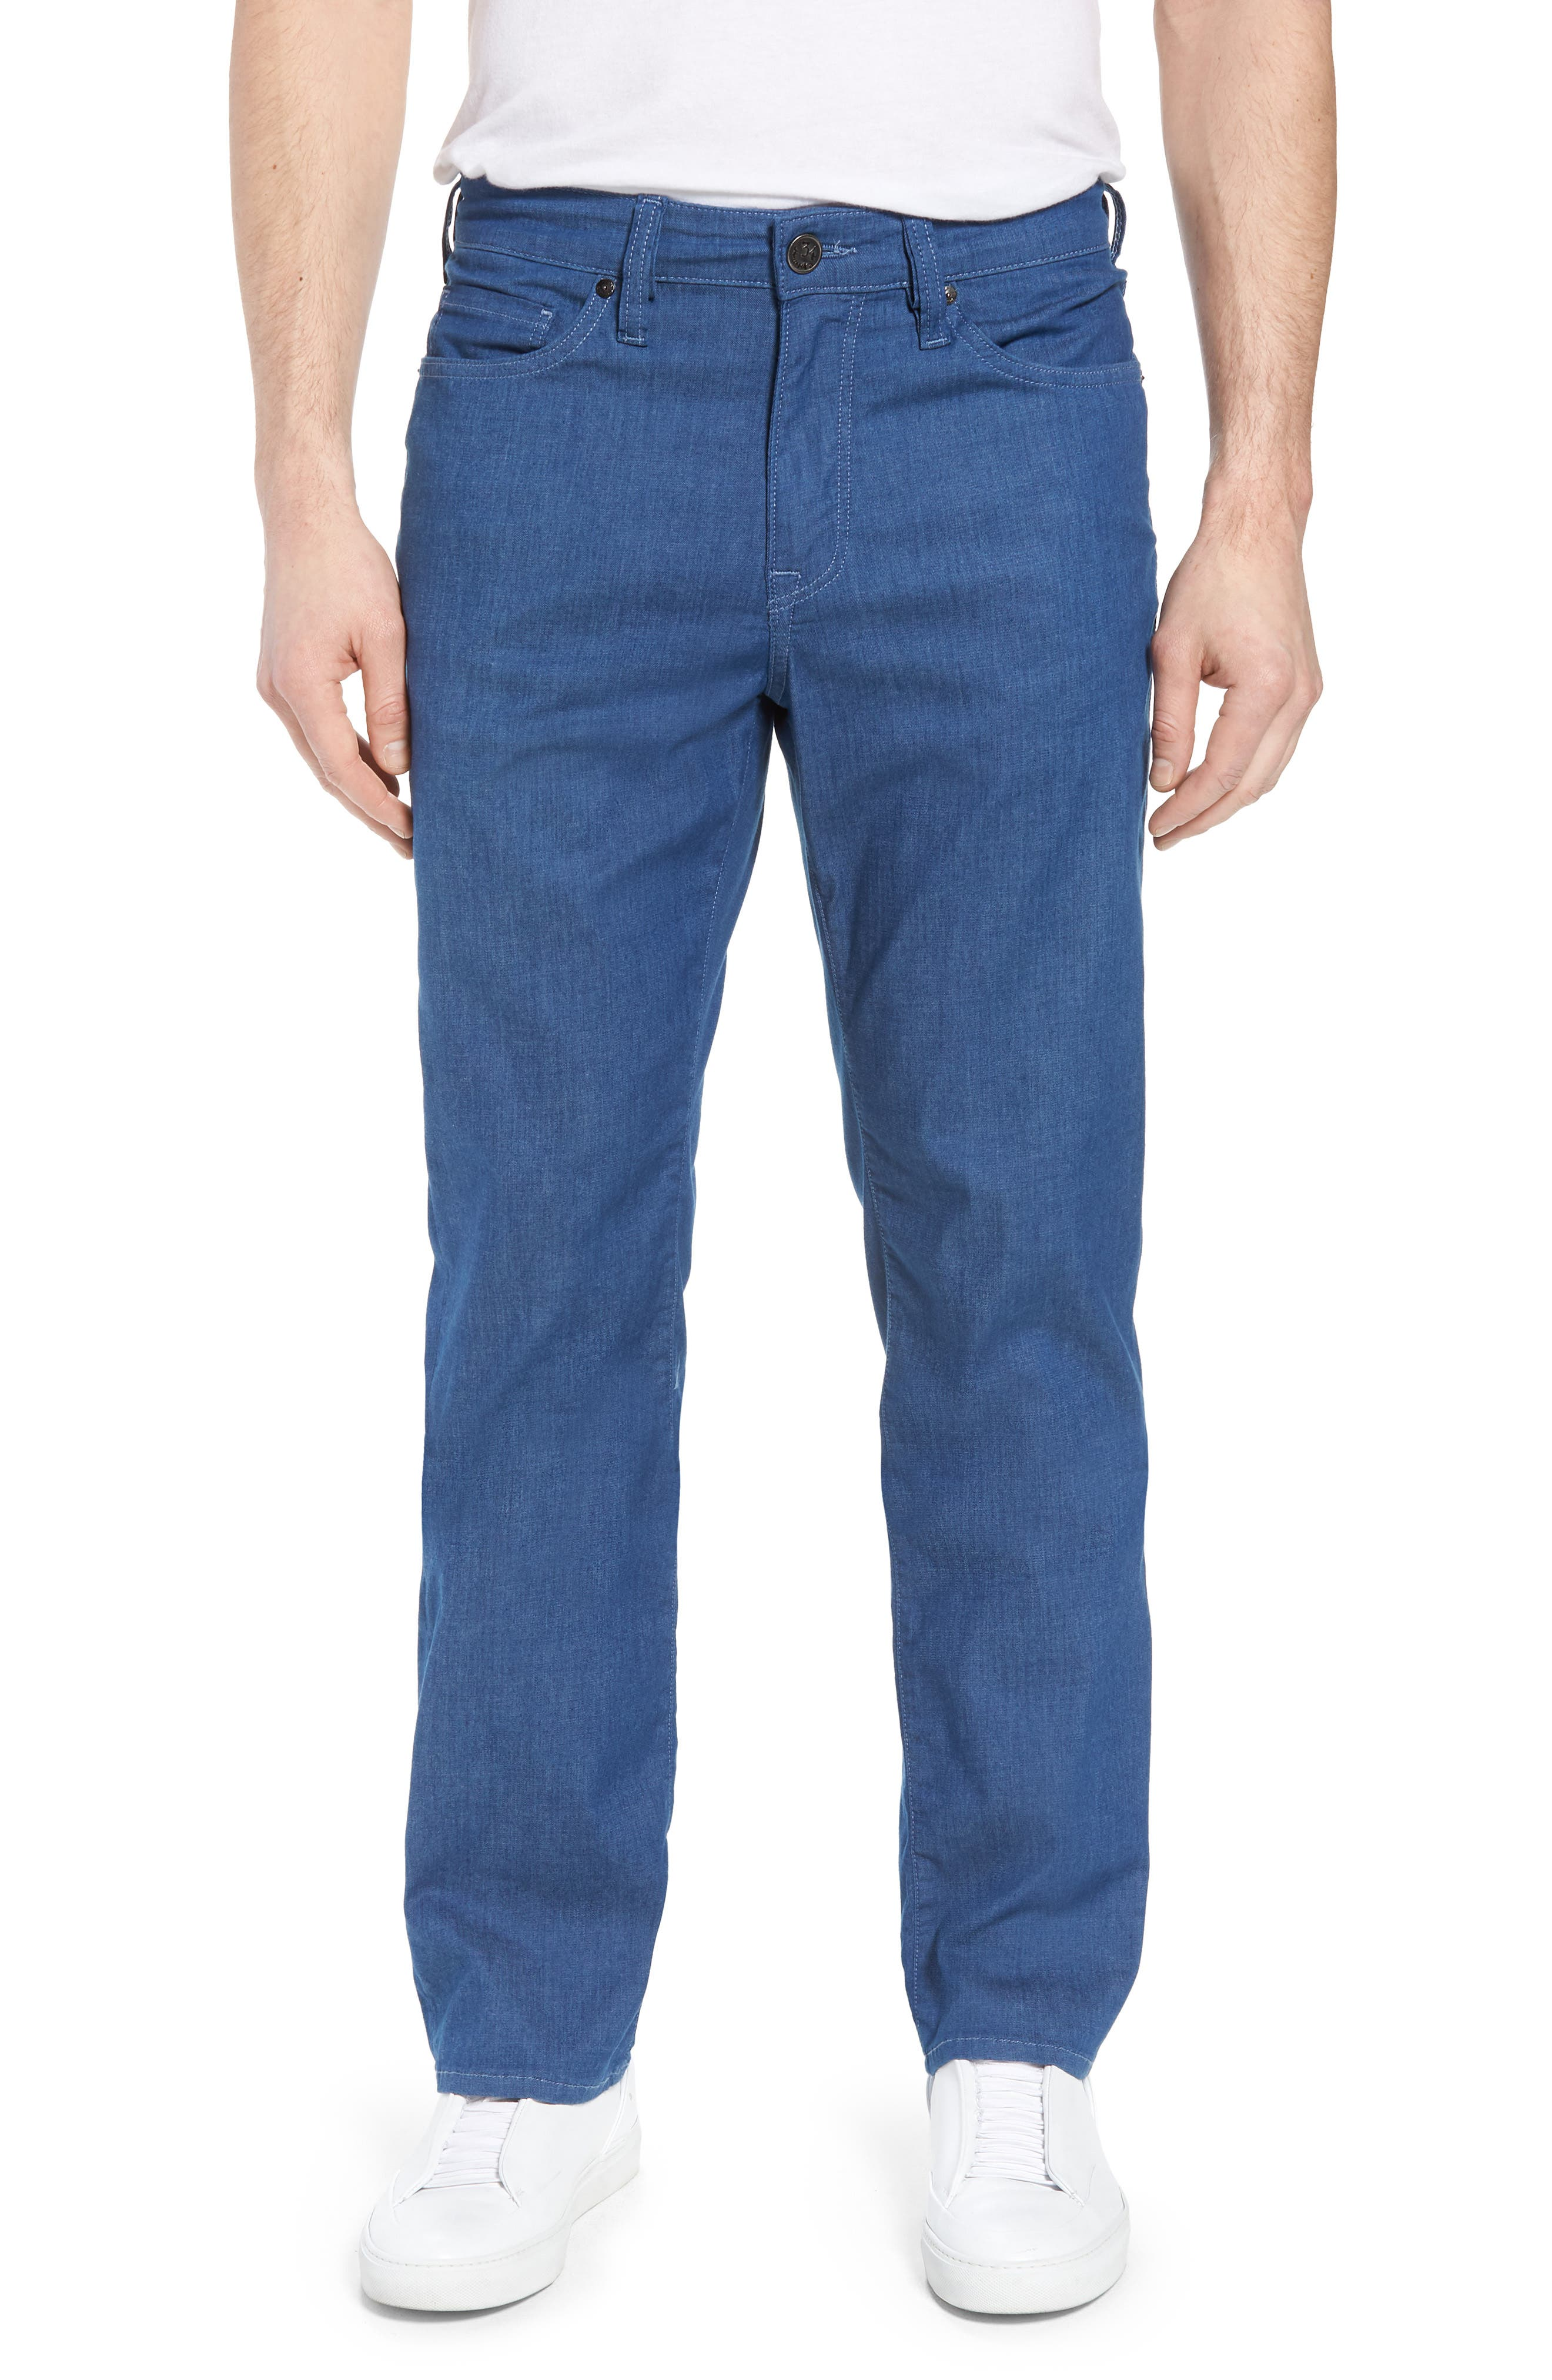 Alternate Image 1 Selected - 34 Heritage Charisma Relaxed Fit Jeans (Mid Maui Denim)